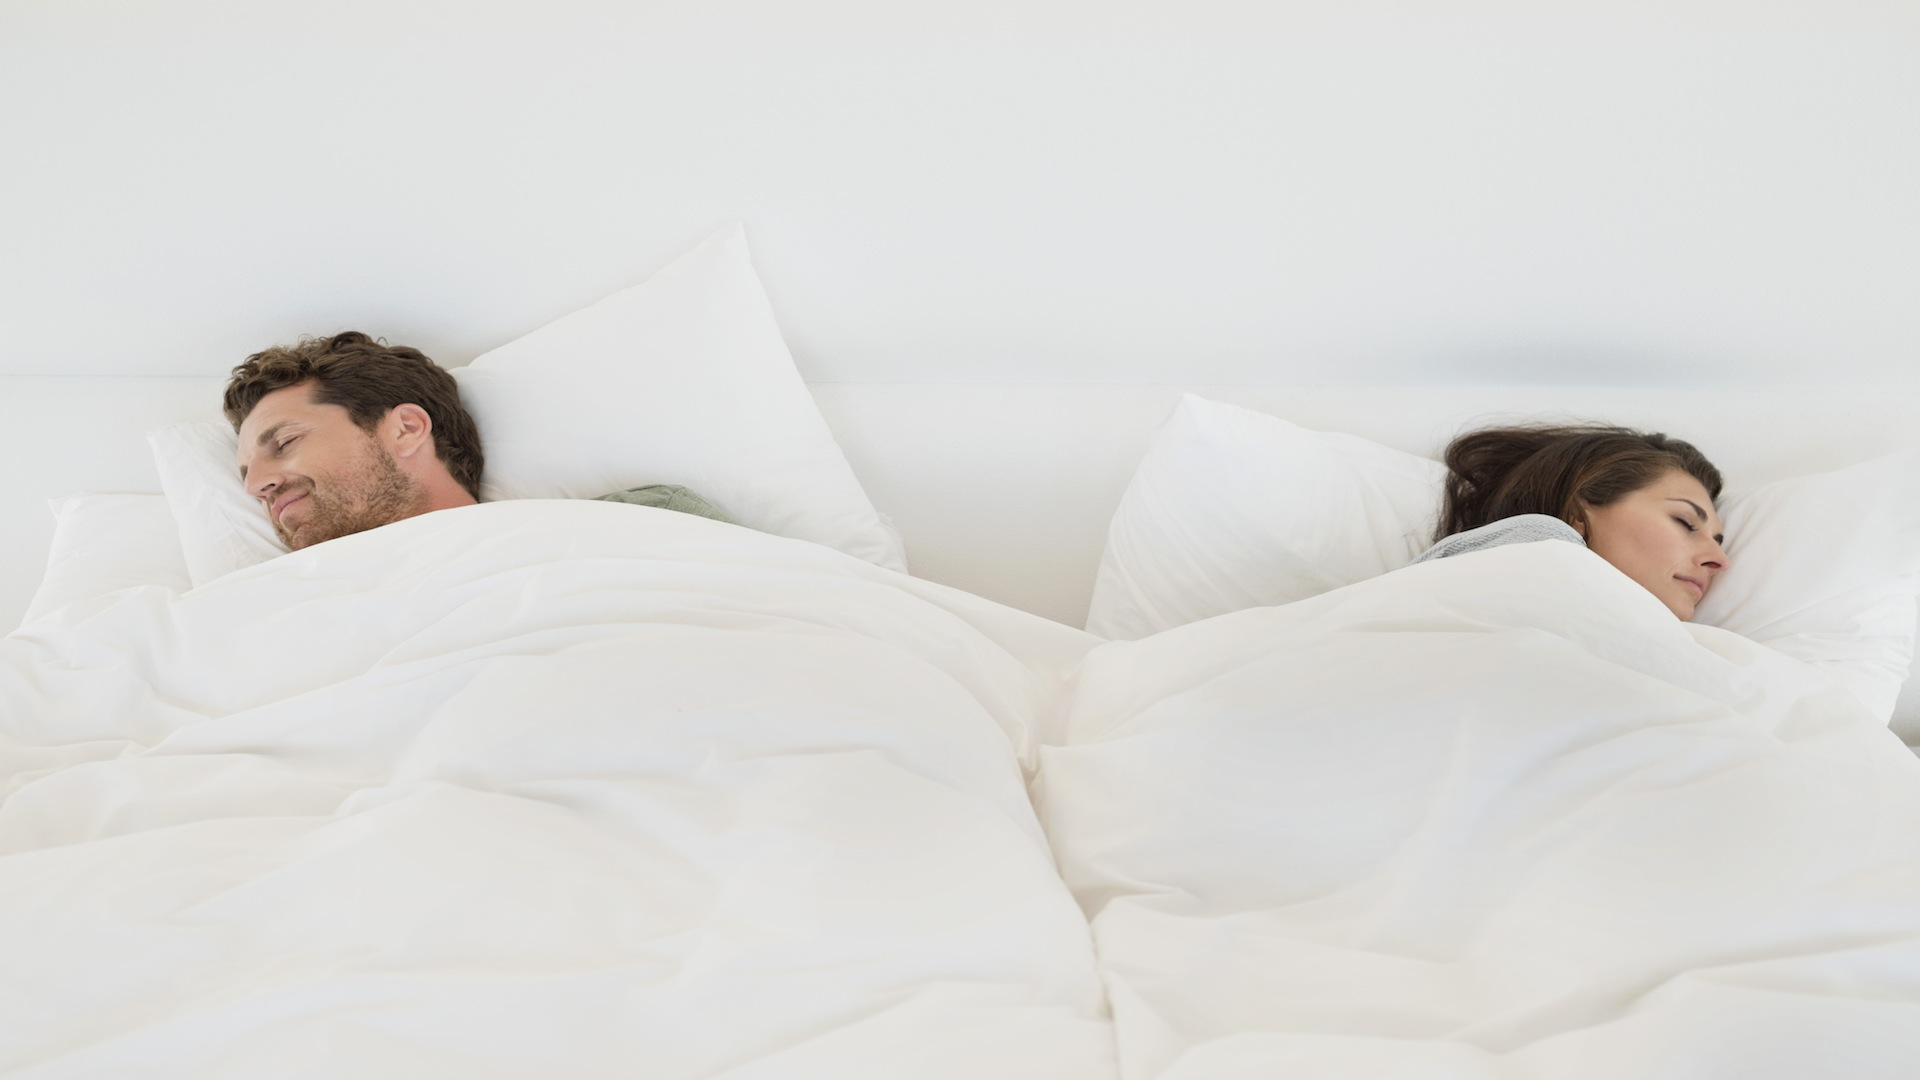 Man and woman sleeping on opposite sides of the bed